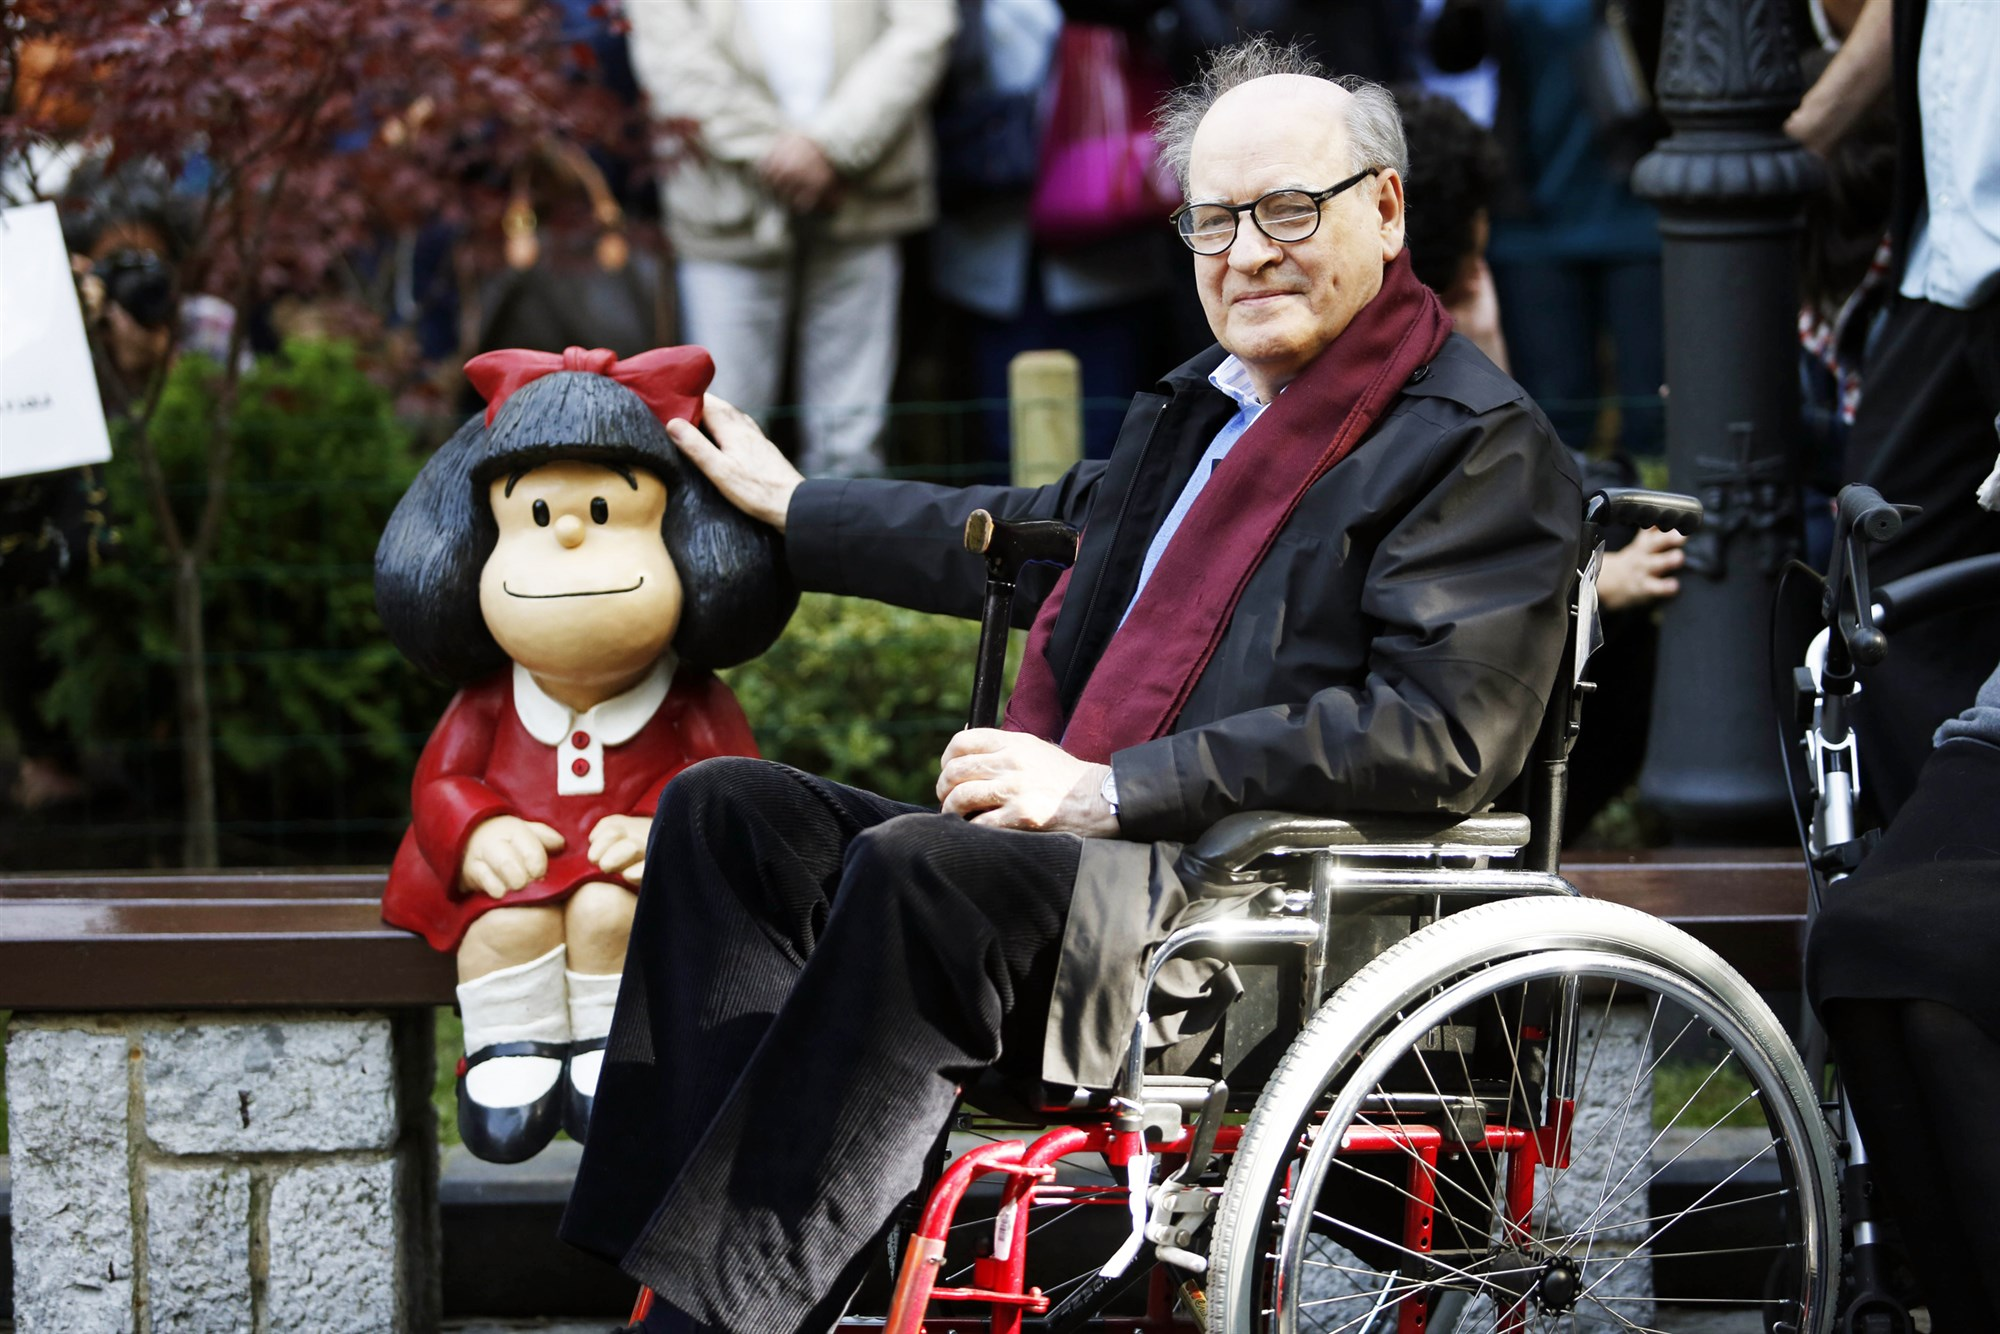 Mafalda Creator Passes Away